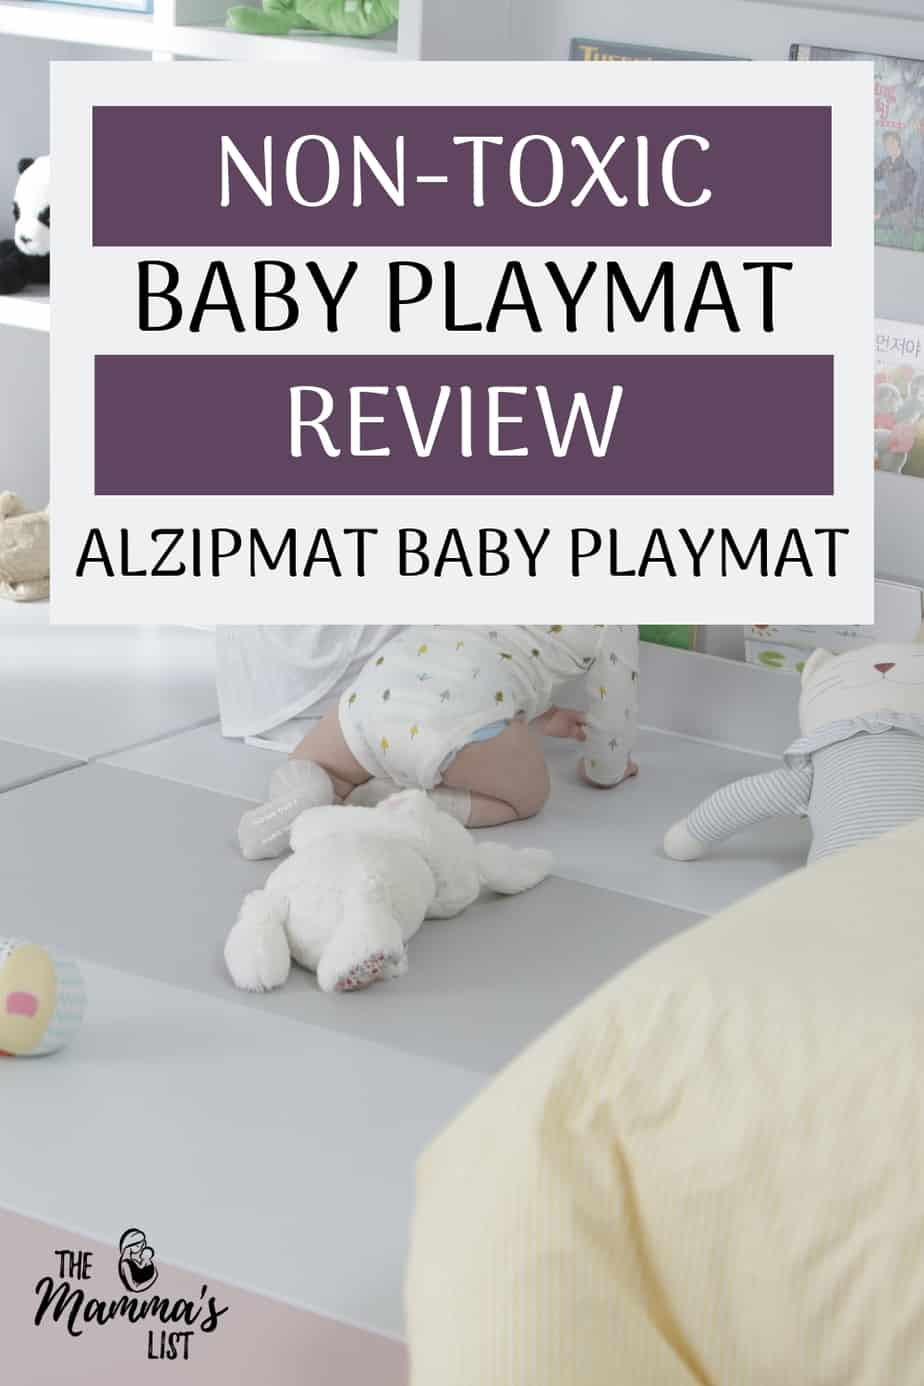 Keep your baby safe from harsh chemicals and toxins by ensuring your infant and toddler products are made from the right stuff. Your baby playmat is where your little one will spend a lot of time, so understanding what it's made of is super important. Check out my review of the non-toxic Alzipmat baby playmat to find out what we love (non-toxic and chemical free) and what you should know if you're planning to buy one!